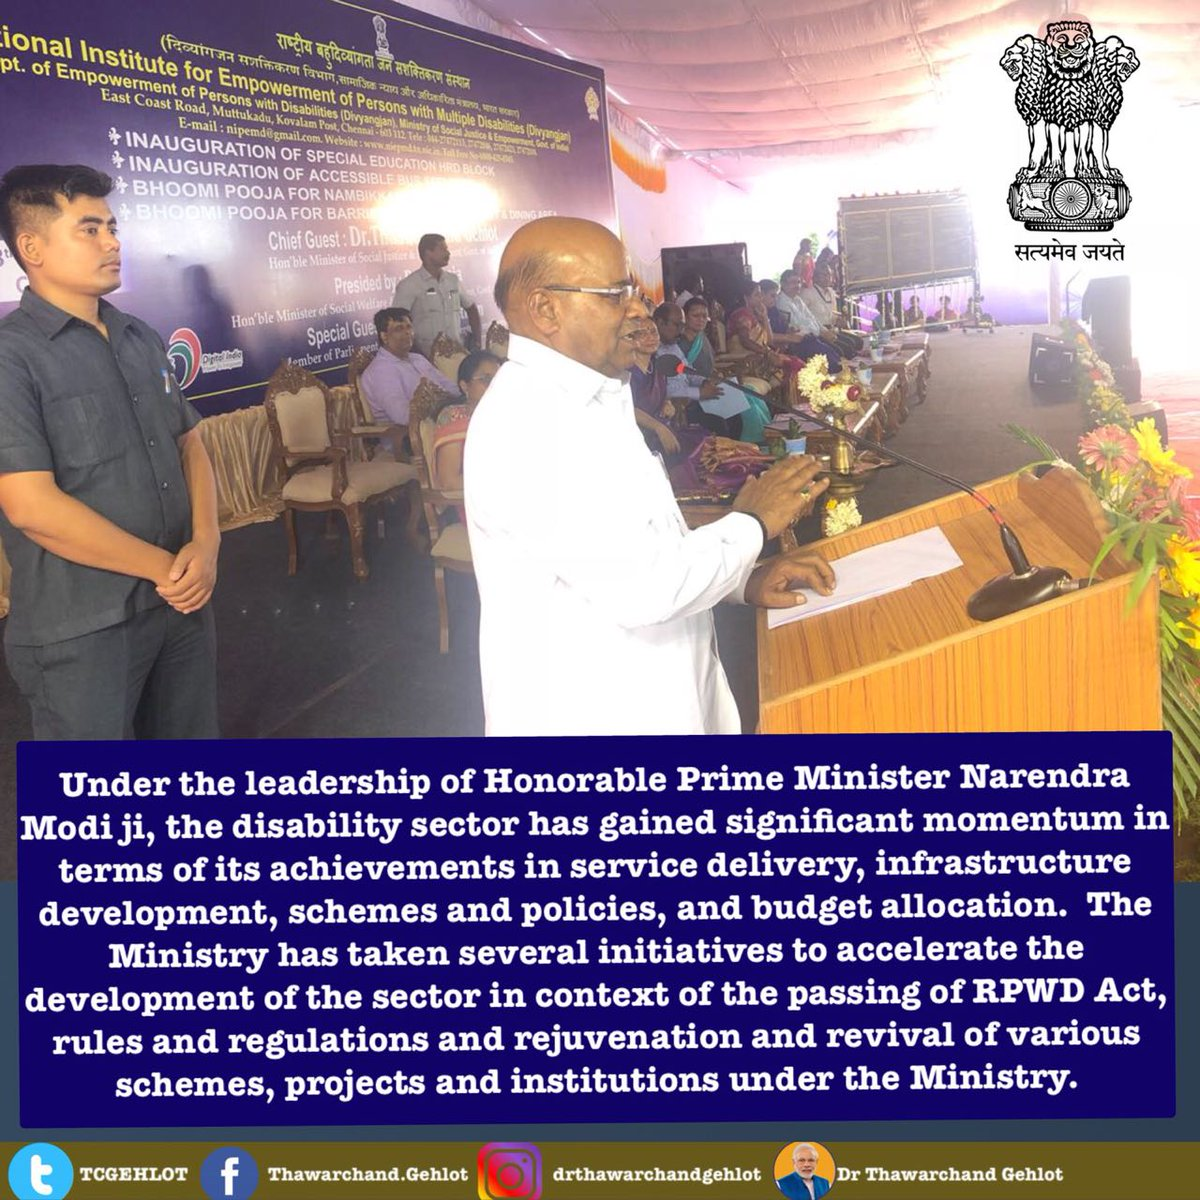 Inauguration of Spl. Education HRD Block, Accessible Bus & Bhoomi pooja for Nambikkai Bhawan, Barrier free waiting lobby & Dinning Area at @NIEPMD Chennai done by HMSJE Dr. @TCGEHLOT on Friday.